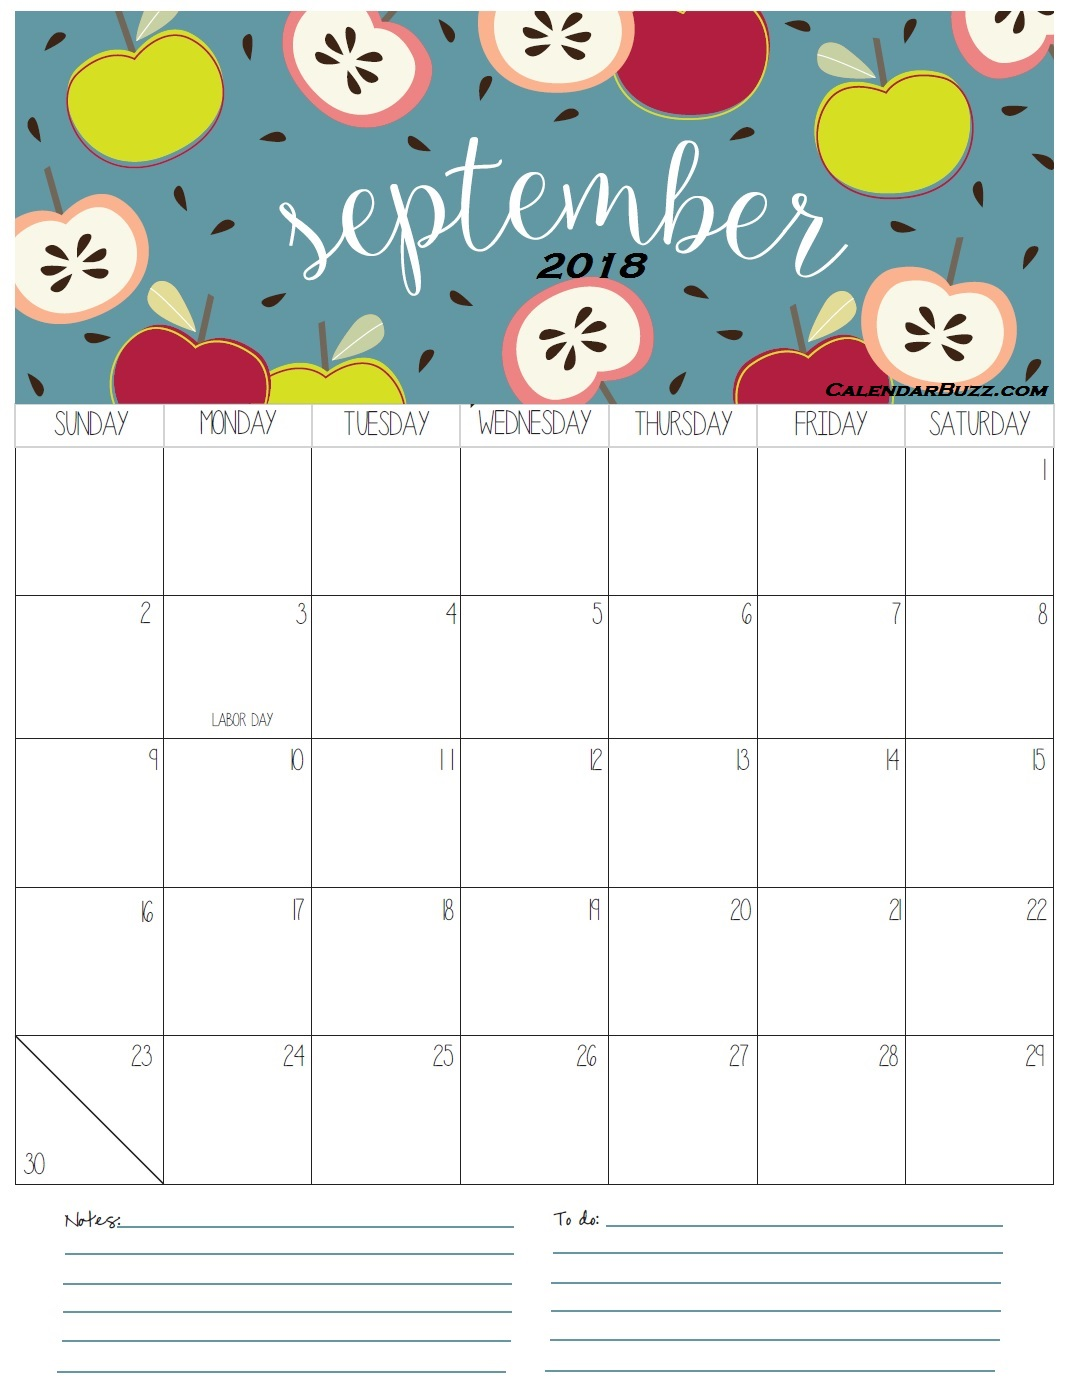 graphic relating to September Printable Calendar called Printable Calendar September 2018 With Vacations - Down load